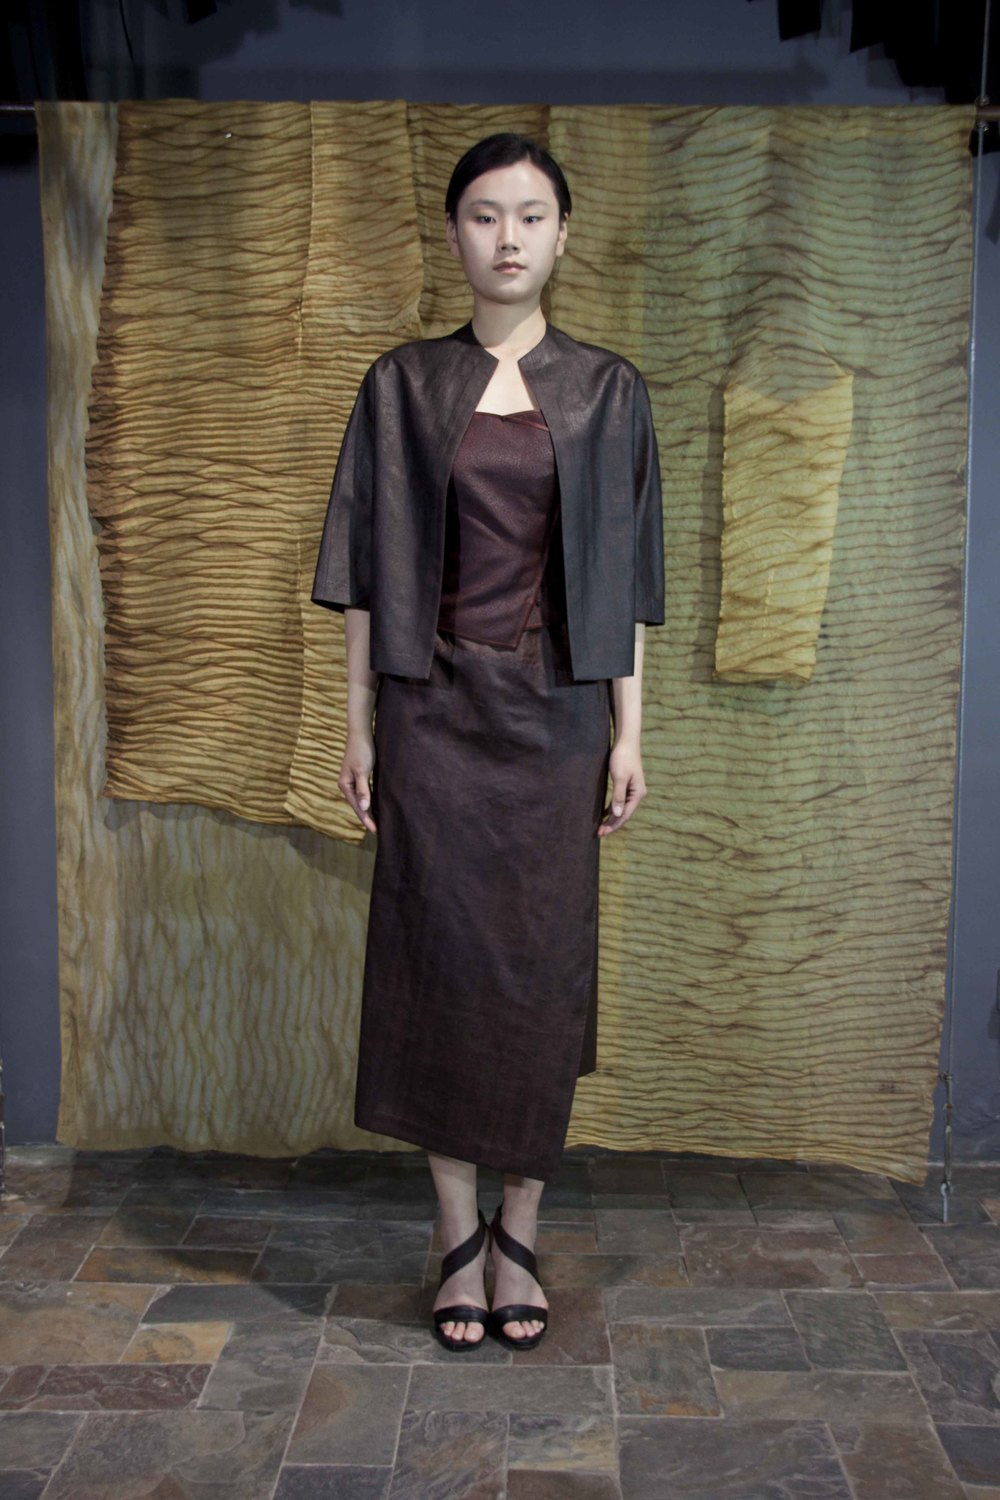 "28-36 Loose rust treated tea-silk jacket/ Red tea-silk top / Iron rust treated tea-silk skirt/    红芸纱夹克  /  红云沙吊带衫  /   铁锈处理红芸纱半身裙                                                                                                                                                                                                                                                                                                        /* Style Definitions */  table.MsoNormalTable 	{mso-style-name:""Table Normal""; 	mso-tstyle-rowband-size:0; 	mso-tstyle-colband-size:0; 	mso-style-noshow:yes; 	mso-style-priority:99; 	mso-style-qformat:yes; 	mso-style-parent:""""; 	mso-padding-alt:0in 5.4pt 0in 5.4pt; 	mso-para-margin-top:0in; 	mso-para-margin-right:0in; 	mso-para-margin-bottom:10.0pt; 	mso-para-margin-left:0in; 	line-height:115%; 	mso-pagination:widow-orphan; 	font-size:11.0pt; 	font-family:""Calibri"",""sans-serif""; 	mso-ascii-font-family:Calibri; 	mso-ascii-theme-font:minor-latin; 	mso-hansi-font-family:Calibri; 	mso-hansi-theme-font:minor-latin; 	mso-bidi-font-family:""Times New Roman""; 	mso-bidi-theme-font:minor-bidi;}"